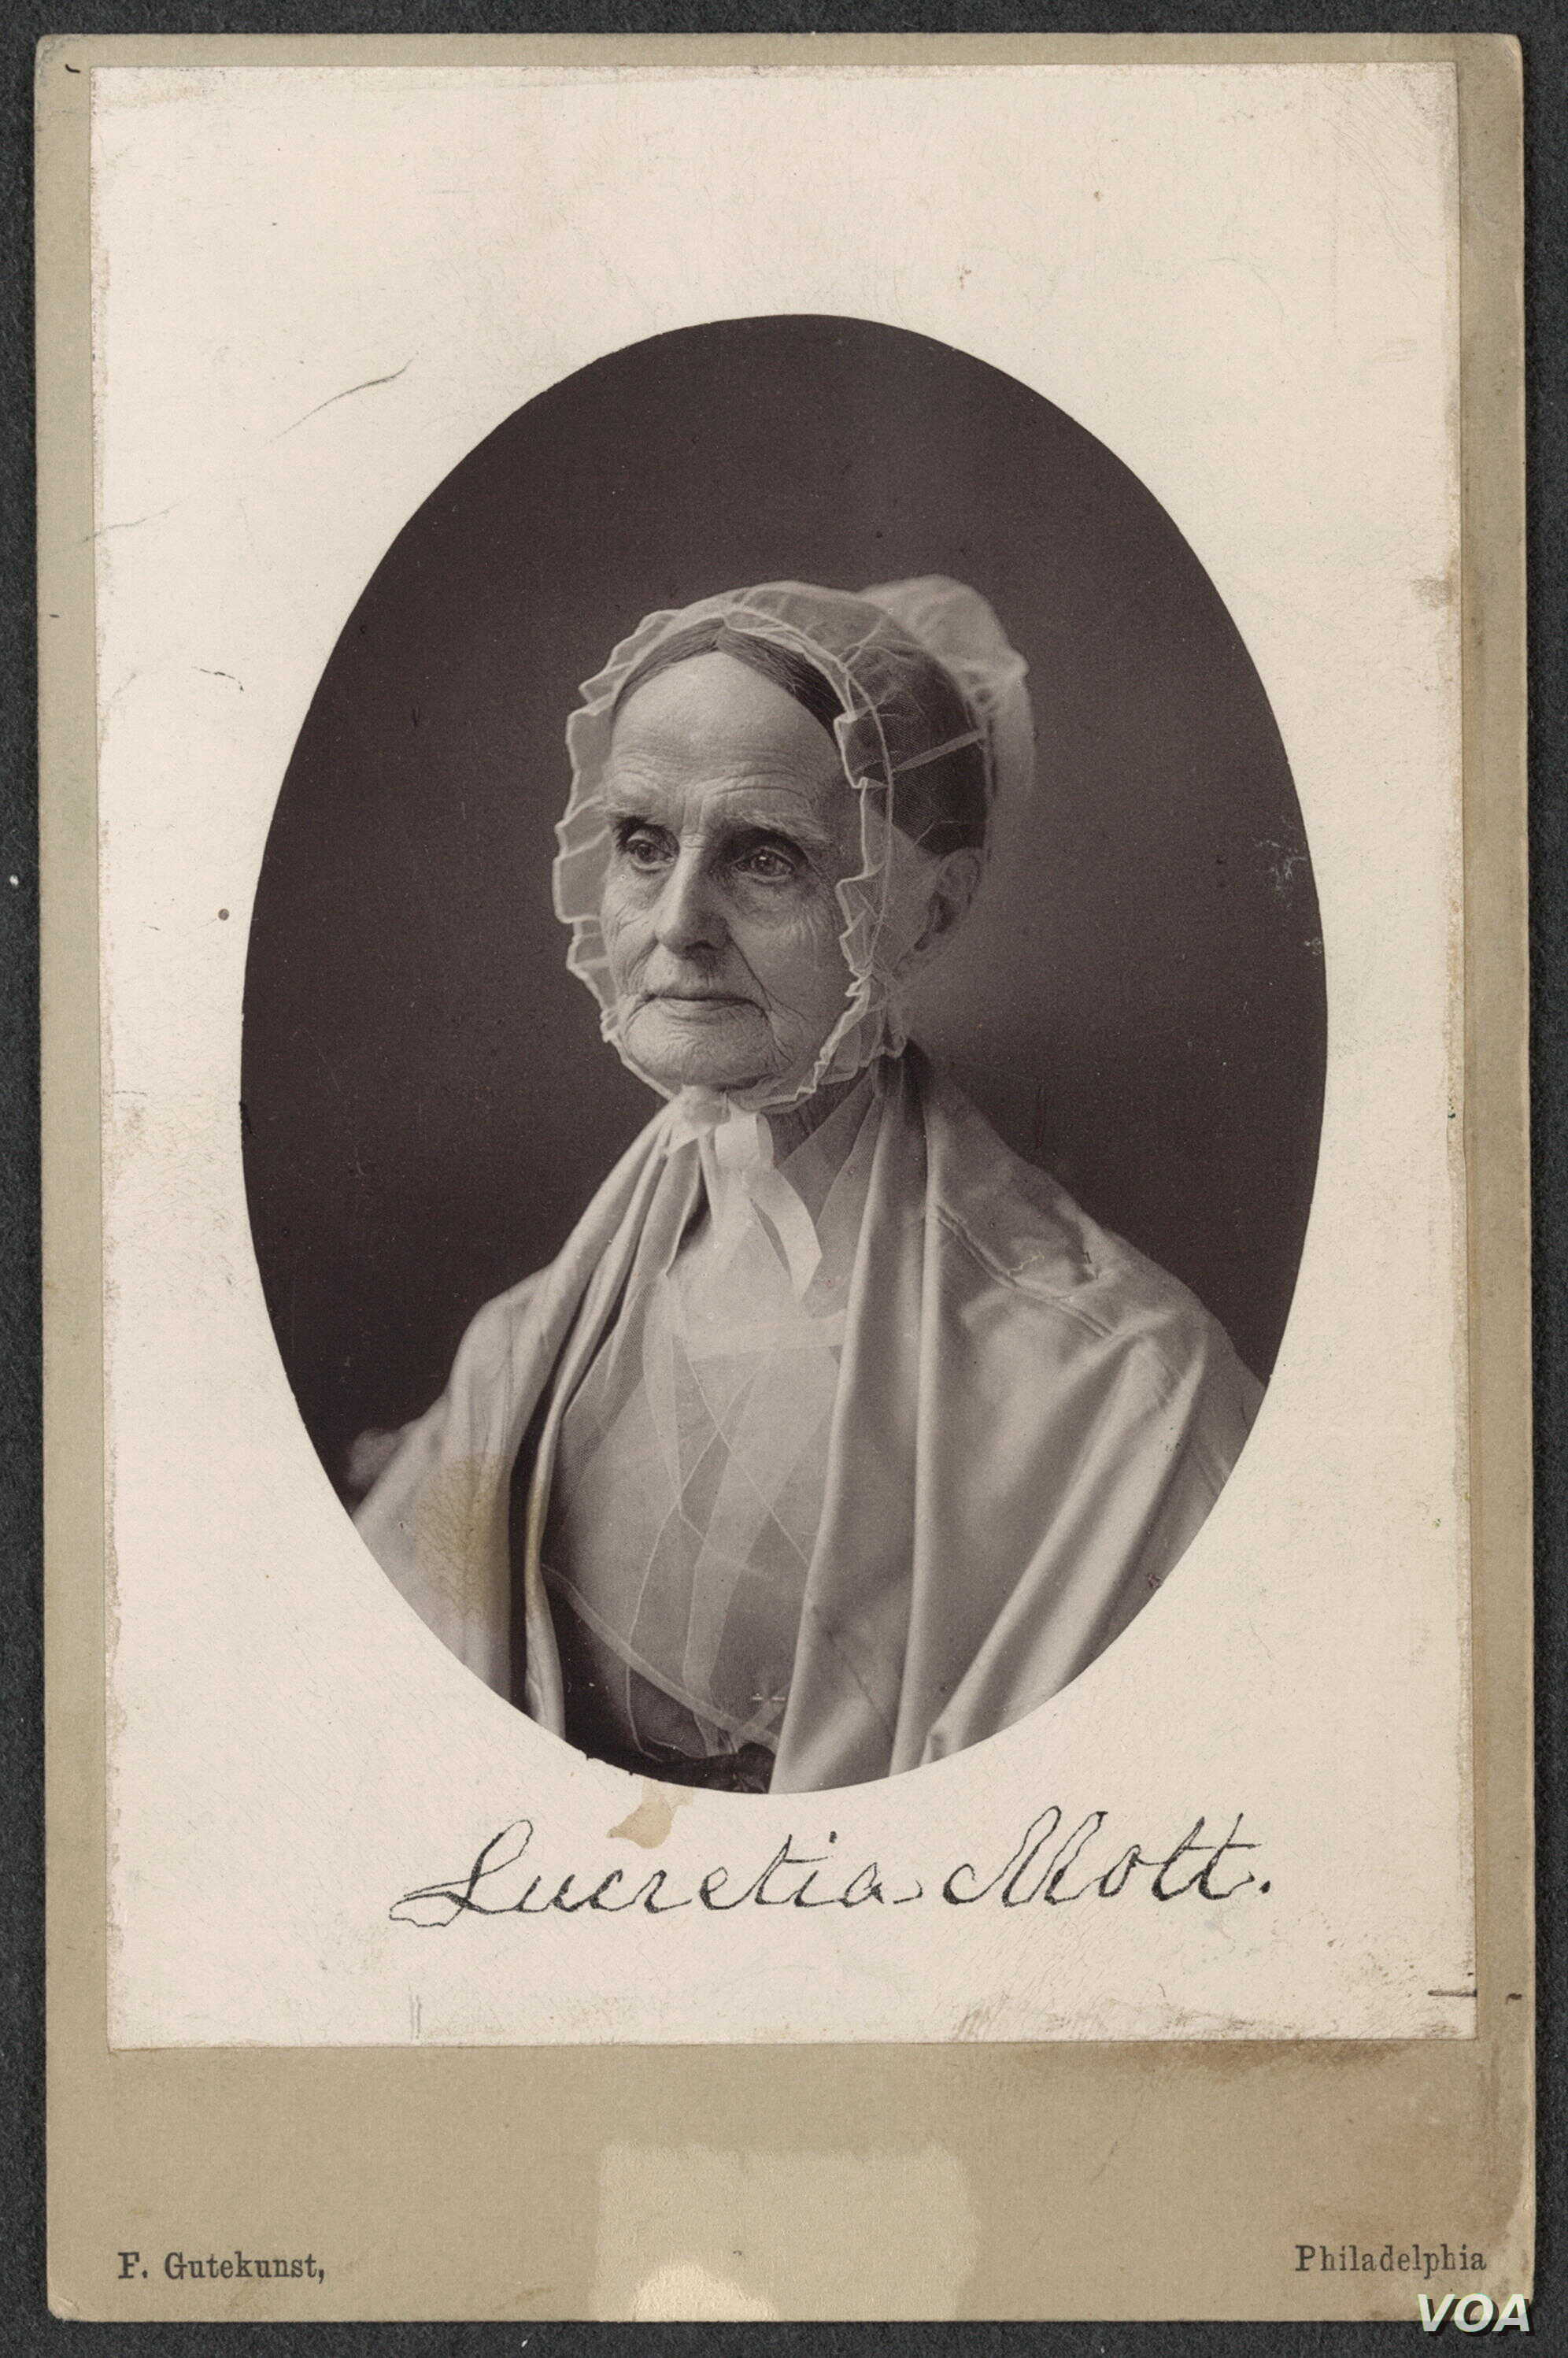 Lucretia Mott was a women's rights activist, abolitionist, religious reformer and a leading social reformer of her time. This photo is from the Library of Congress collection, Women of Protest.